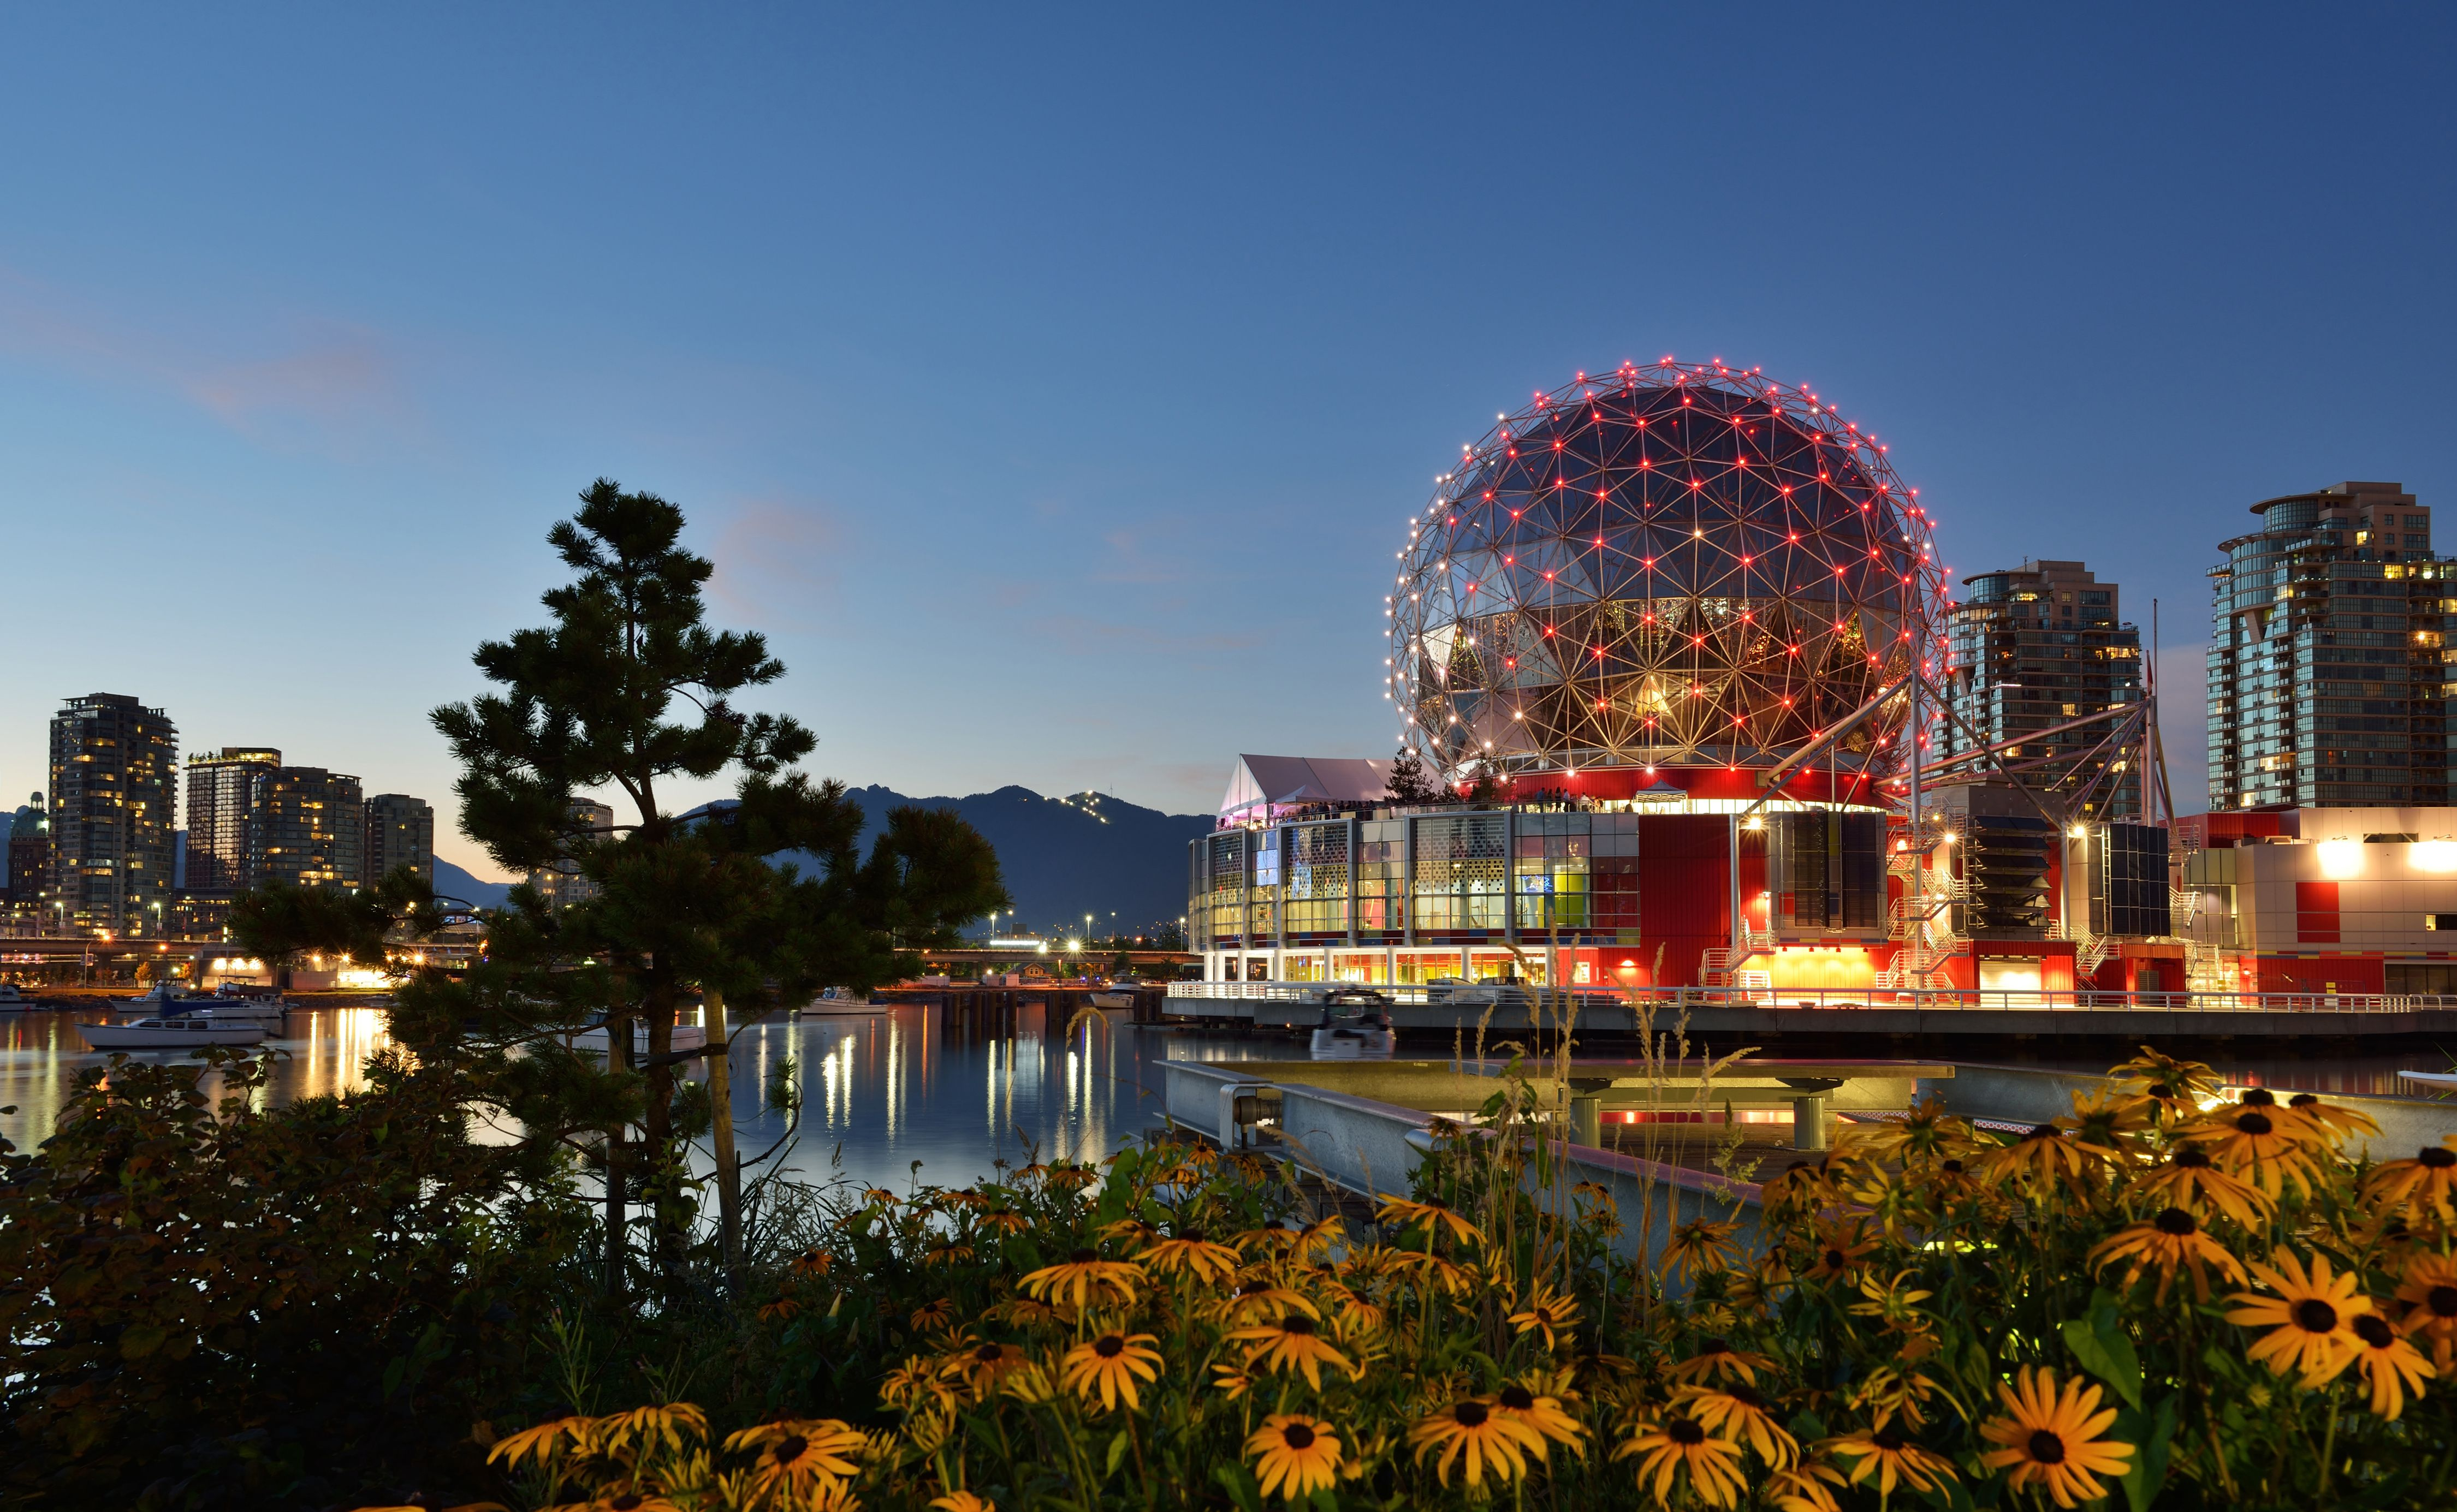 Science world top ranked vancouver travel guides tourhq science world top ranked vancouver travel guides tourhq sciox Gallery